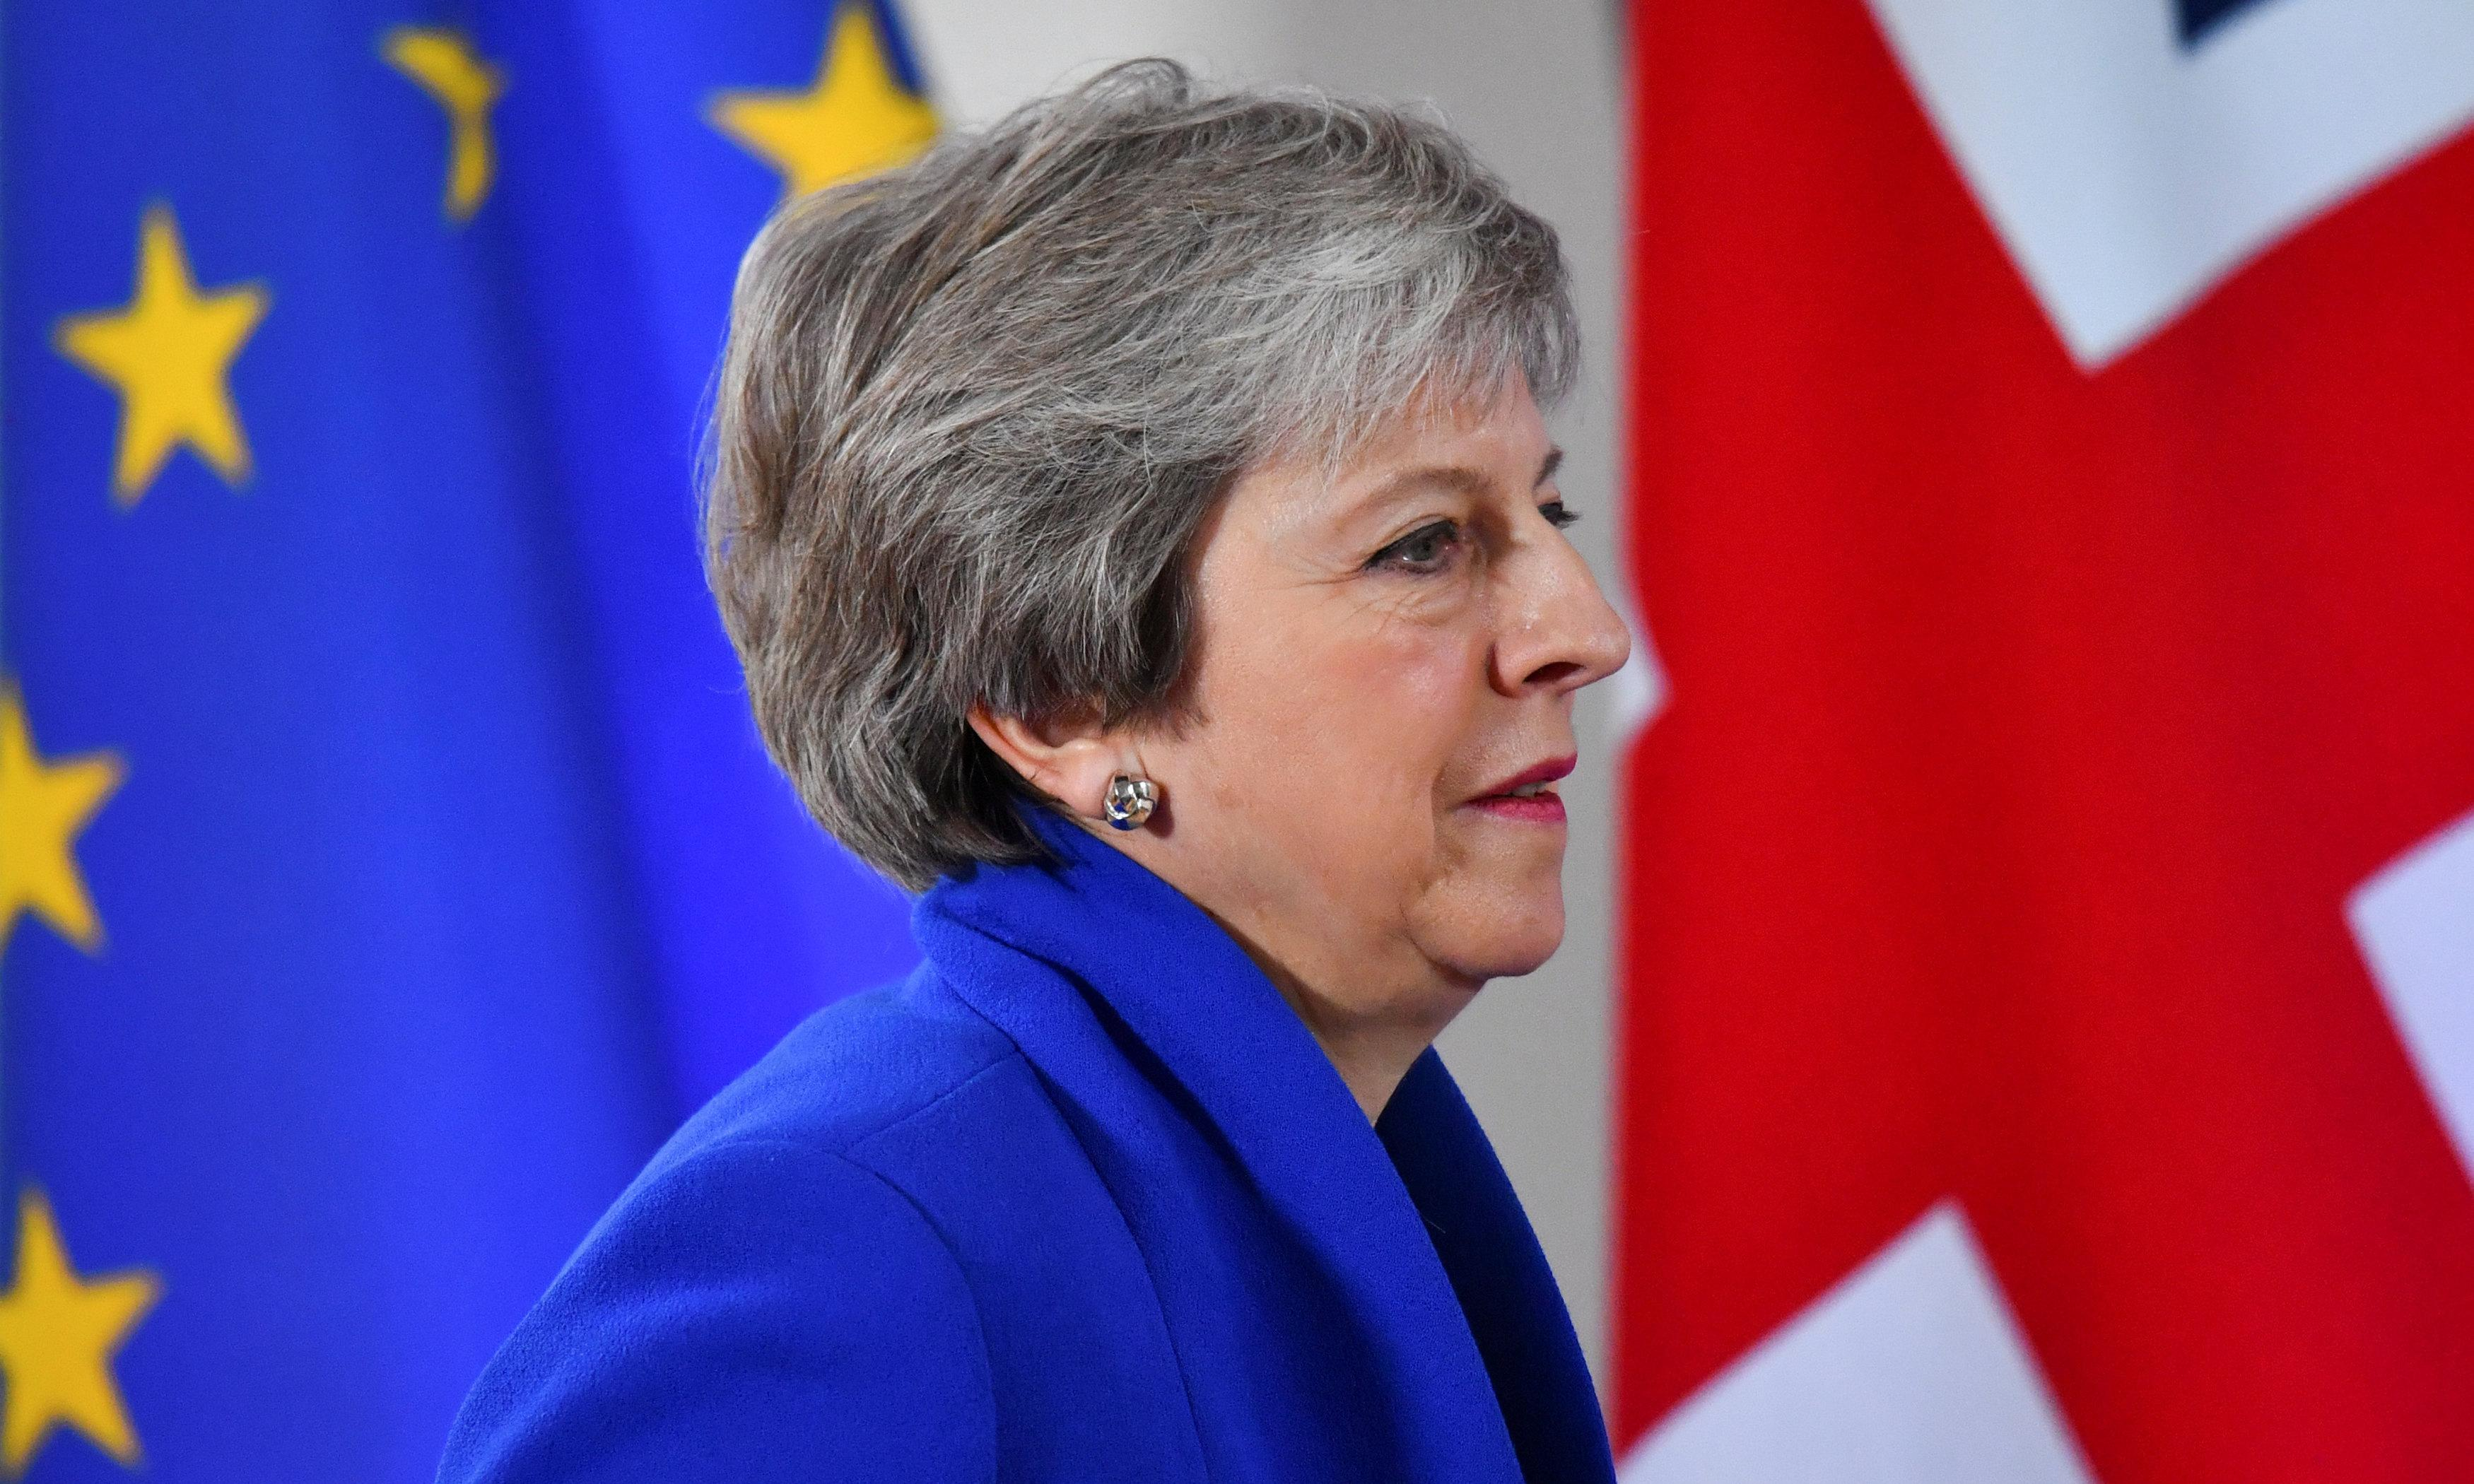 EU to hold emergency no-deal talks if MPs vote down Brexit deal